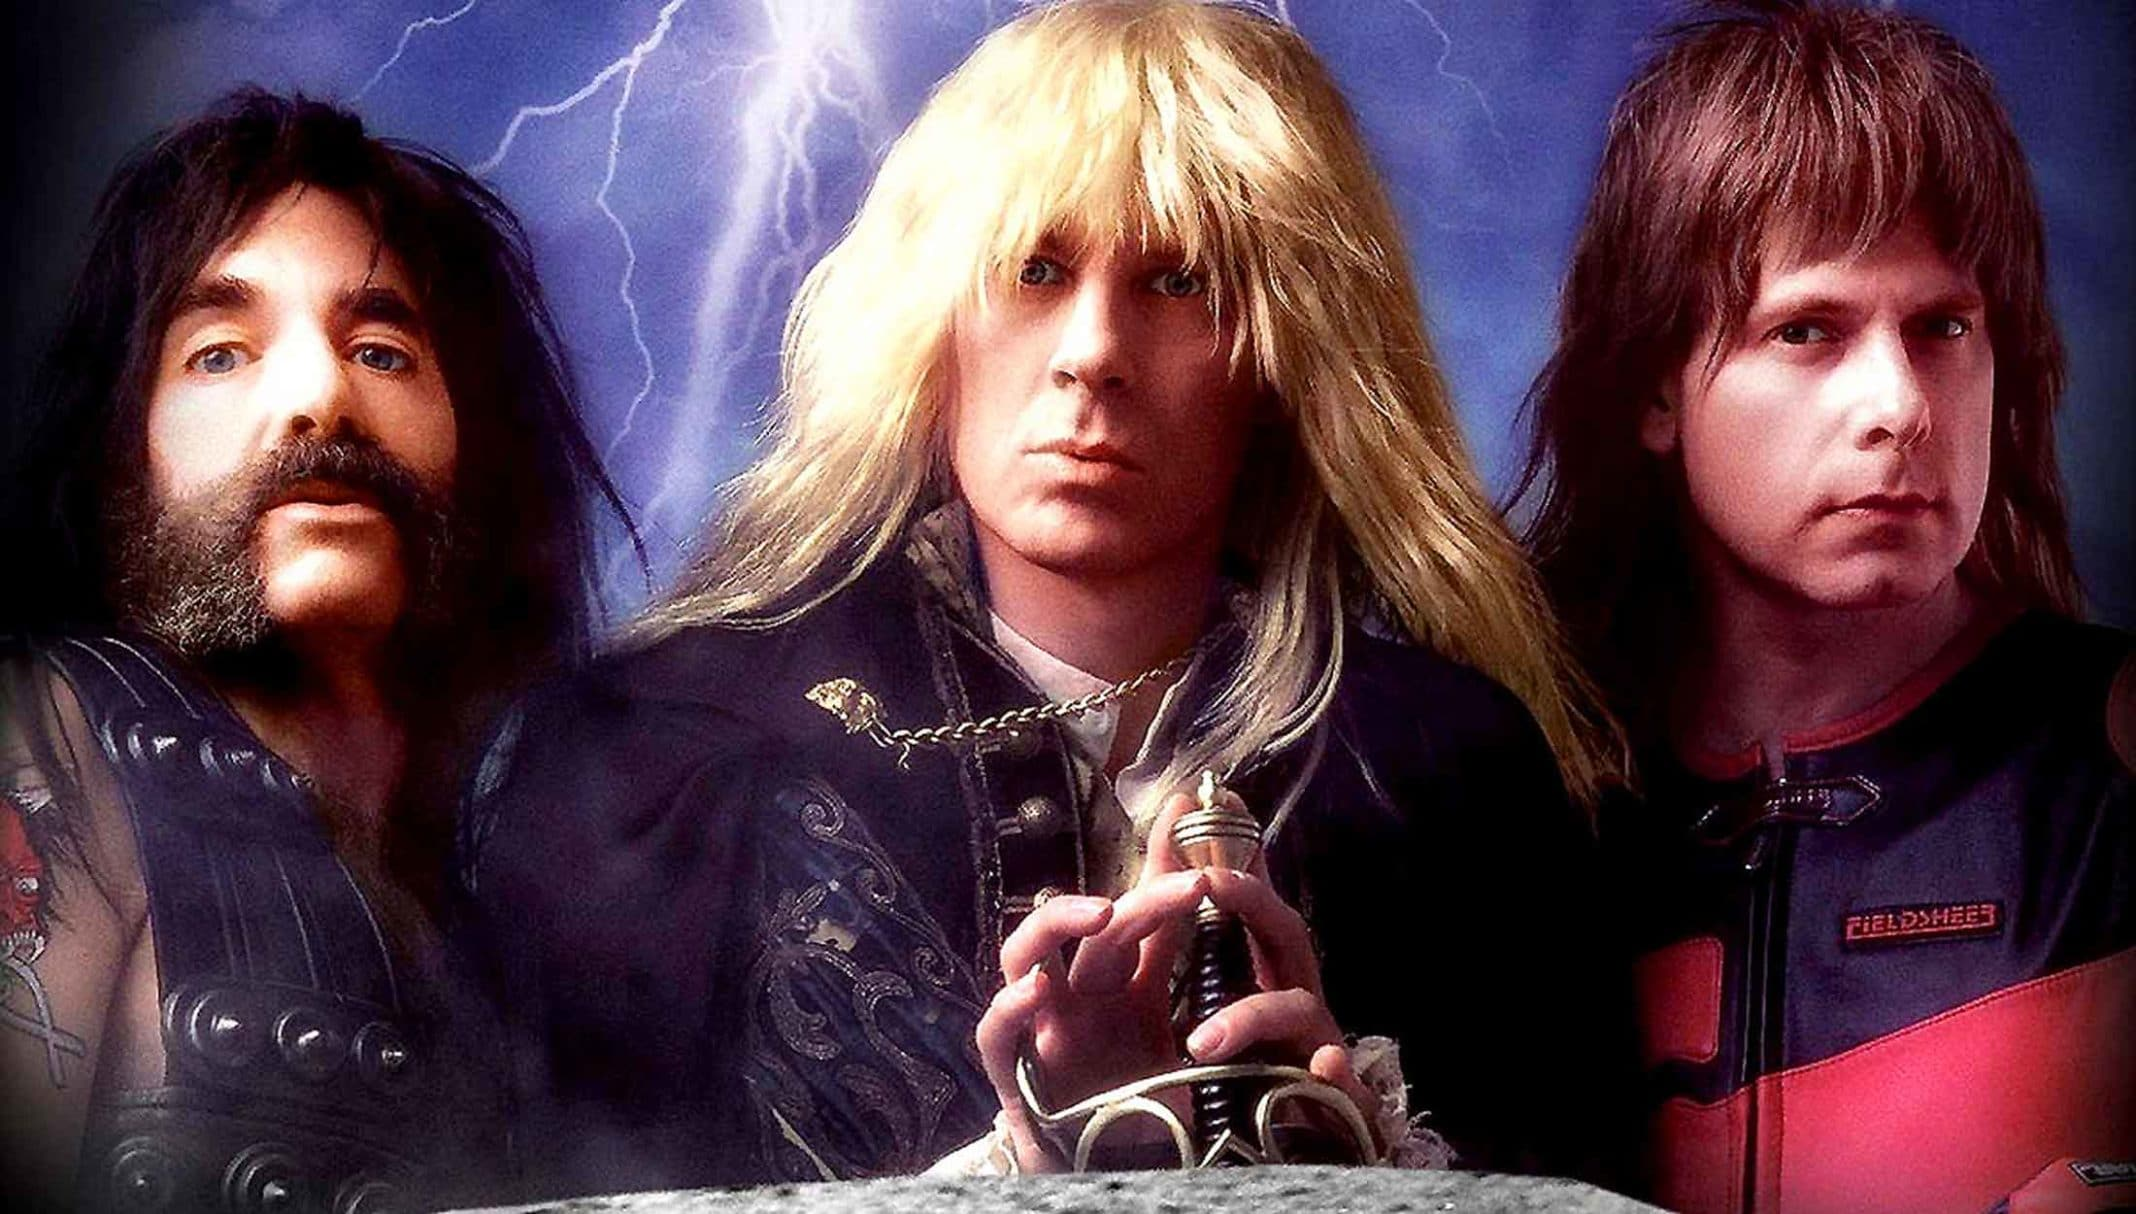 spinal tap full movie download